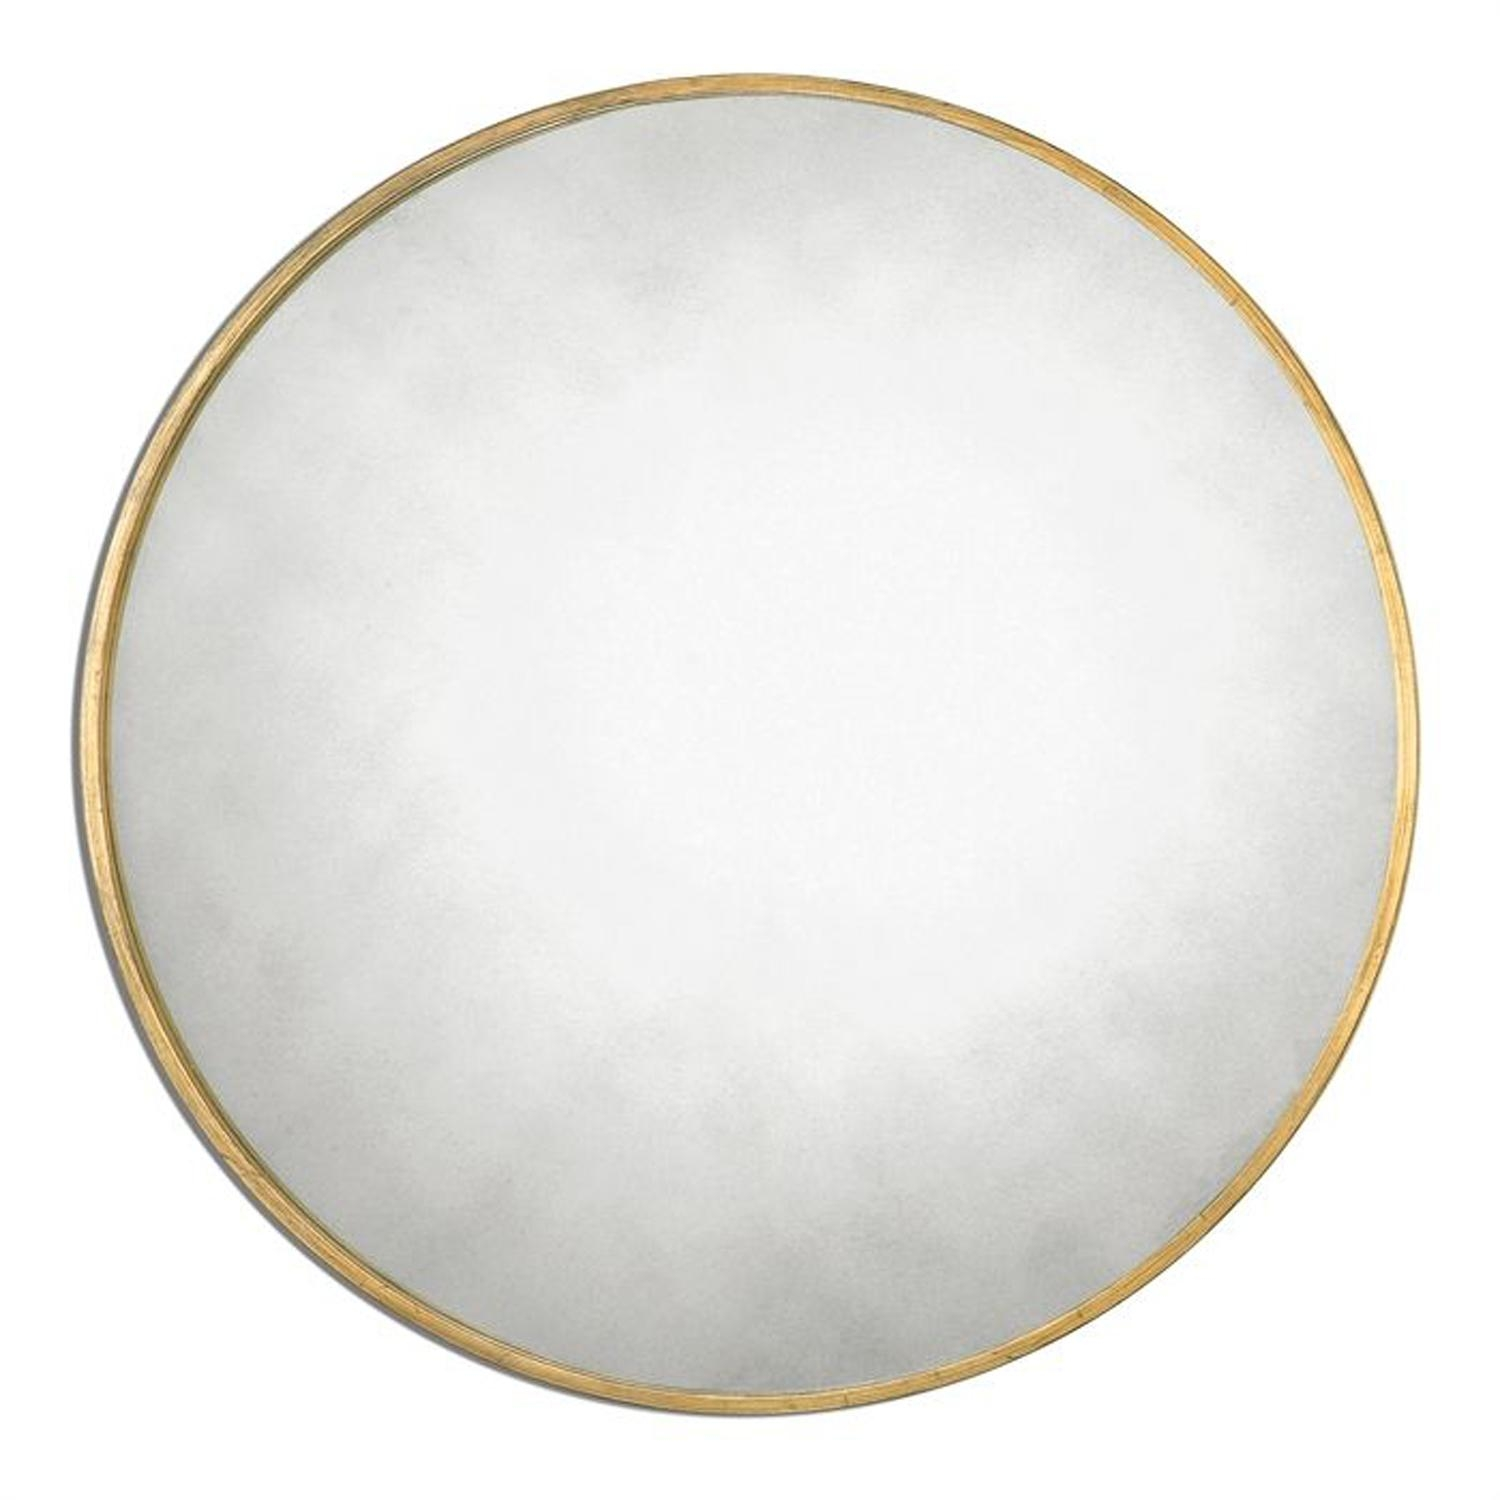 Junius Round Gold Round Mirror Uttermost Wall Mirror Mirrors Home With Large Circular Mirror (Image 6 of 20)